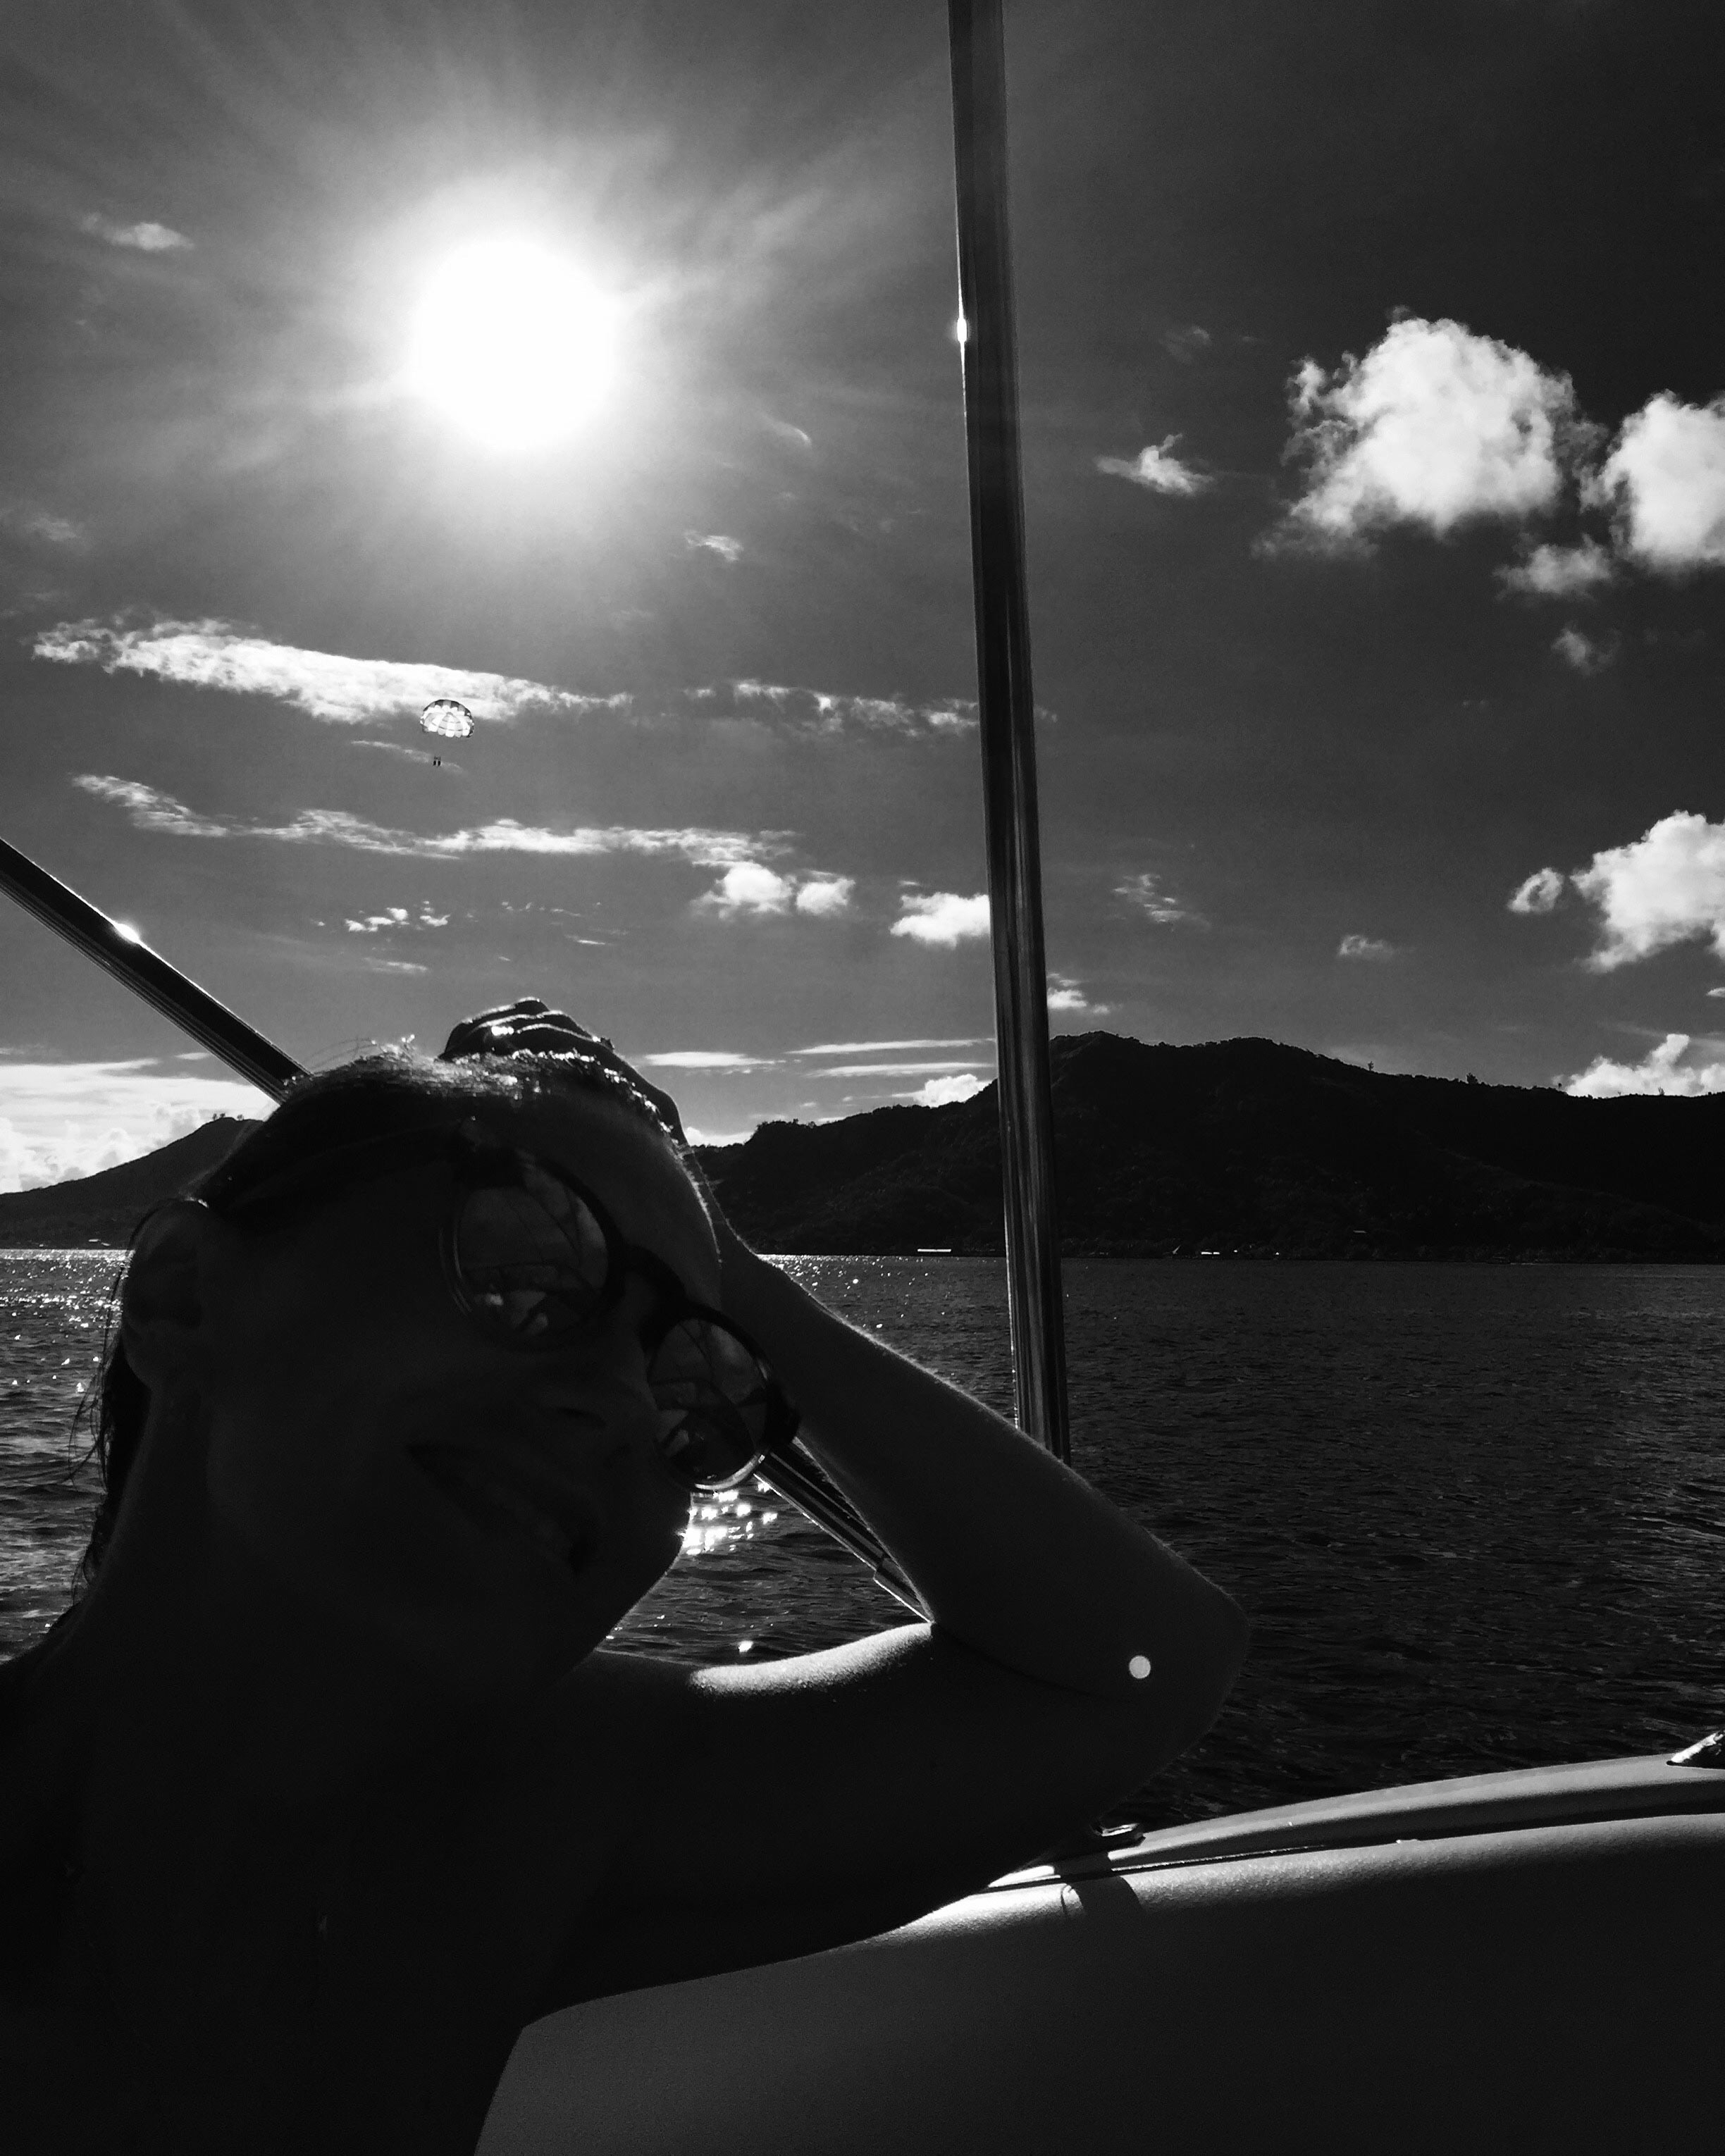 A black and white image of the silhouettes of a woman sitting on a boat and the Bora Bora landscape